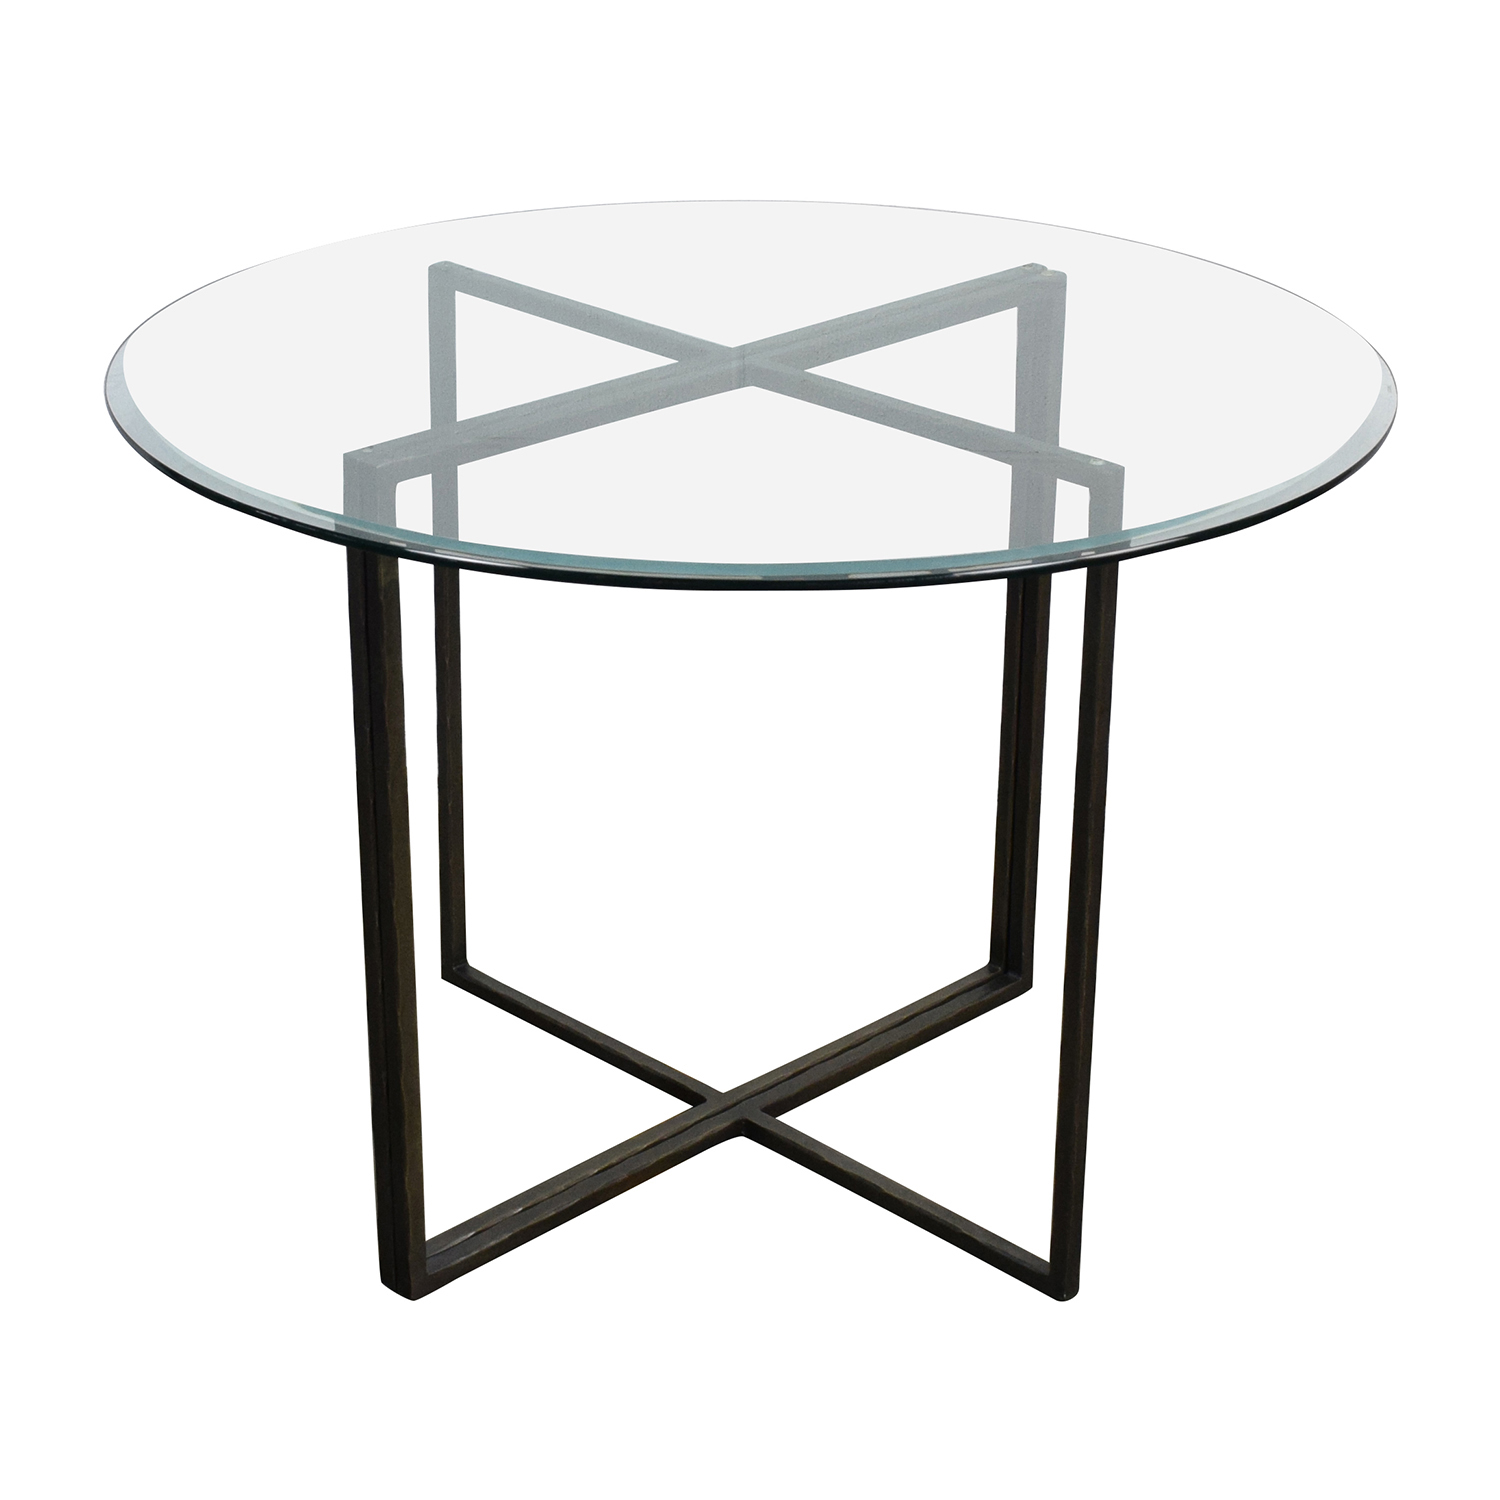 Crate and Barrel Crate & Barrel Everitt Glass Top Dining Table for sale